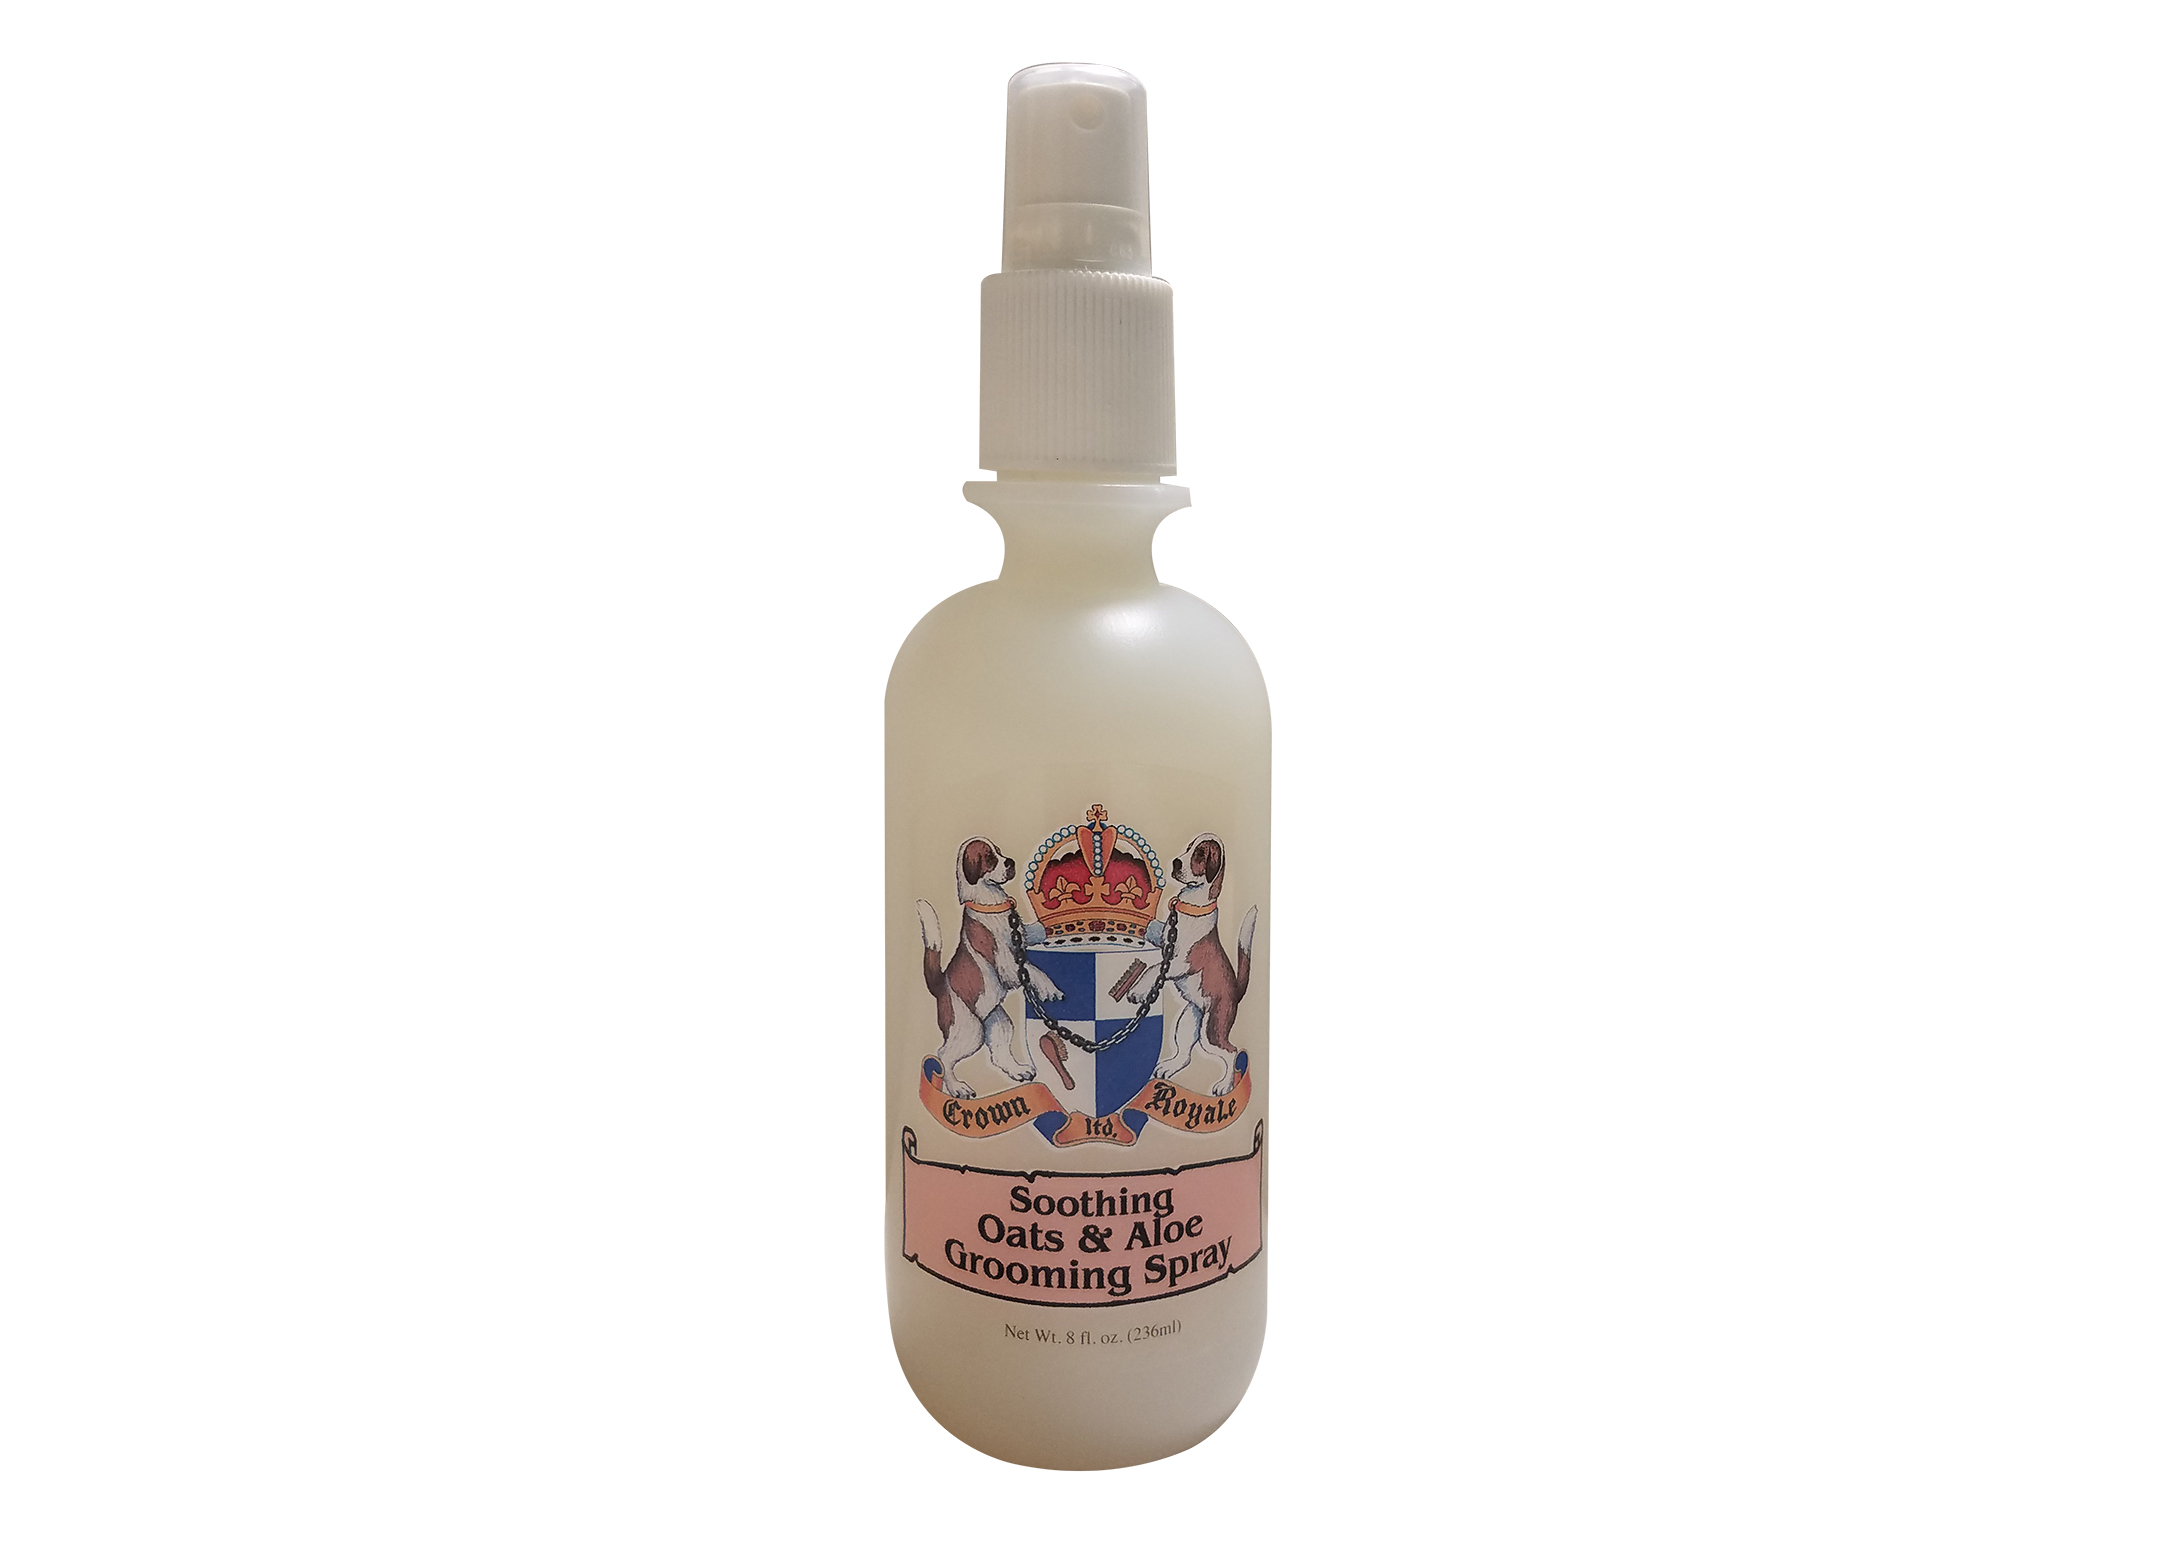 Crown Royale Soothing Oats & Aloe Grooming Spray